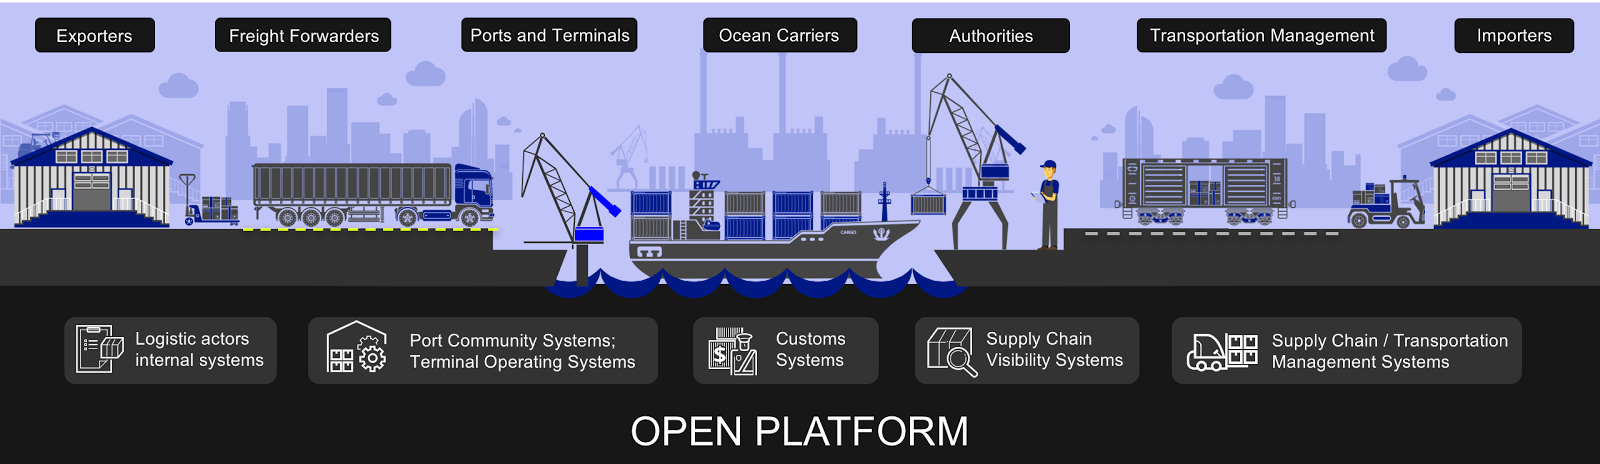 How-does-blockchain-in-the-shipping-industry-work-blog-parangat-technologies